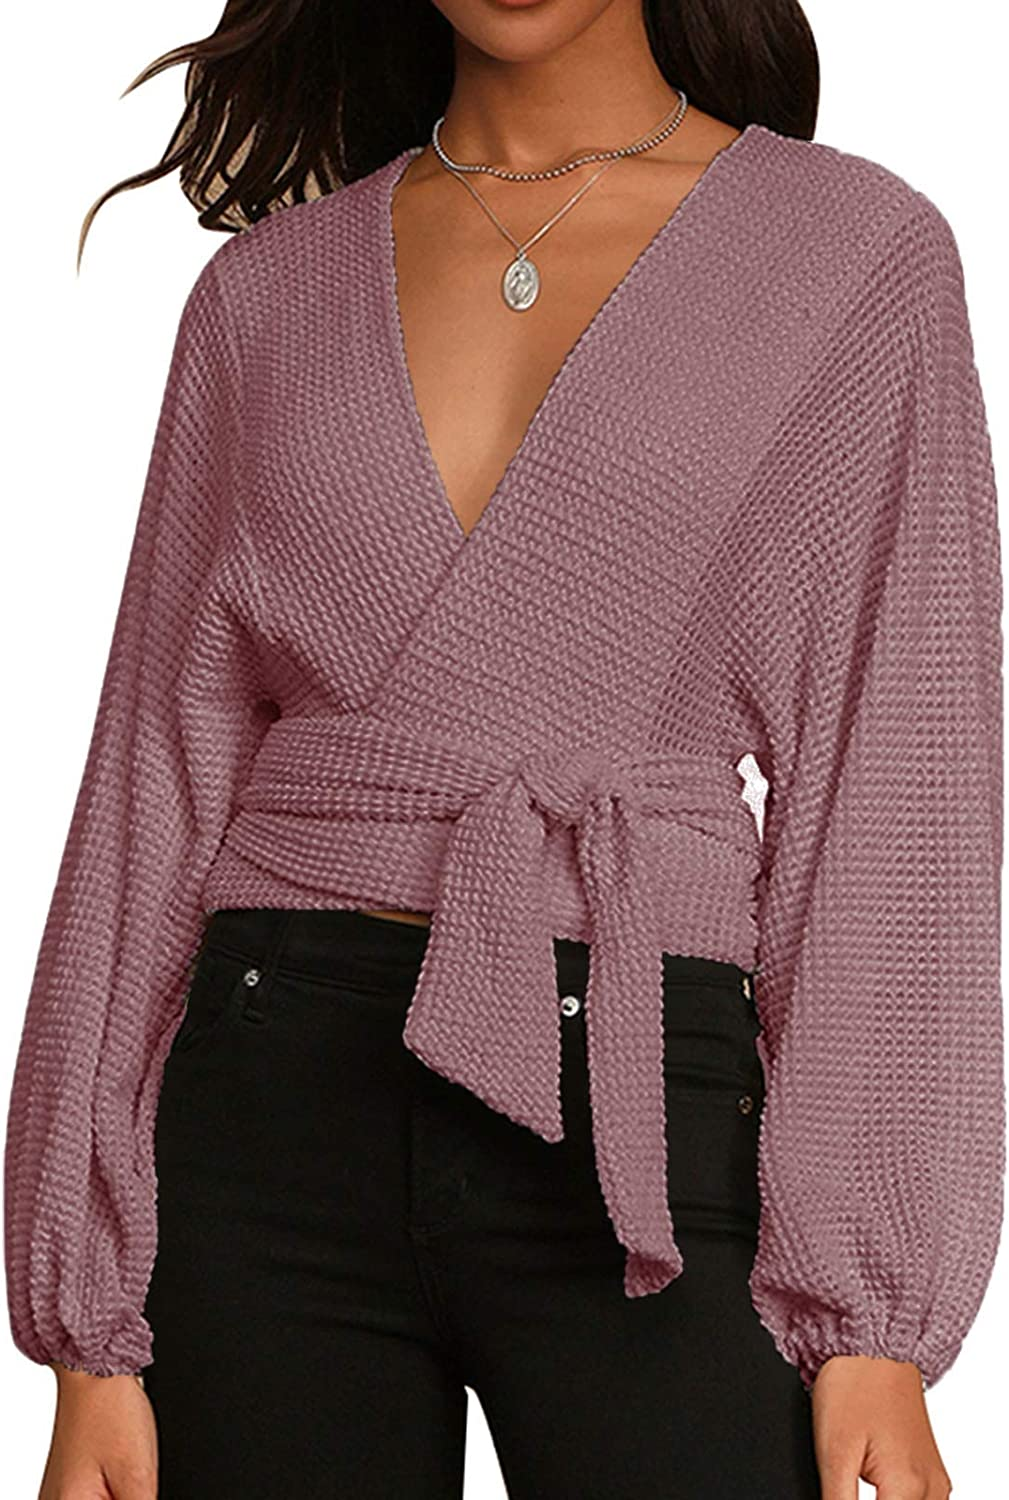 Women's V Neck Long Sleeve Wrap Sweater Loose Casual Waffle Knit Pullover Tops